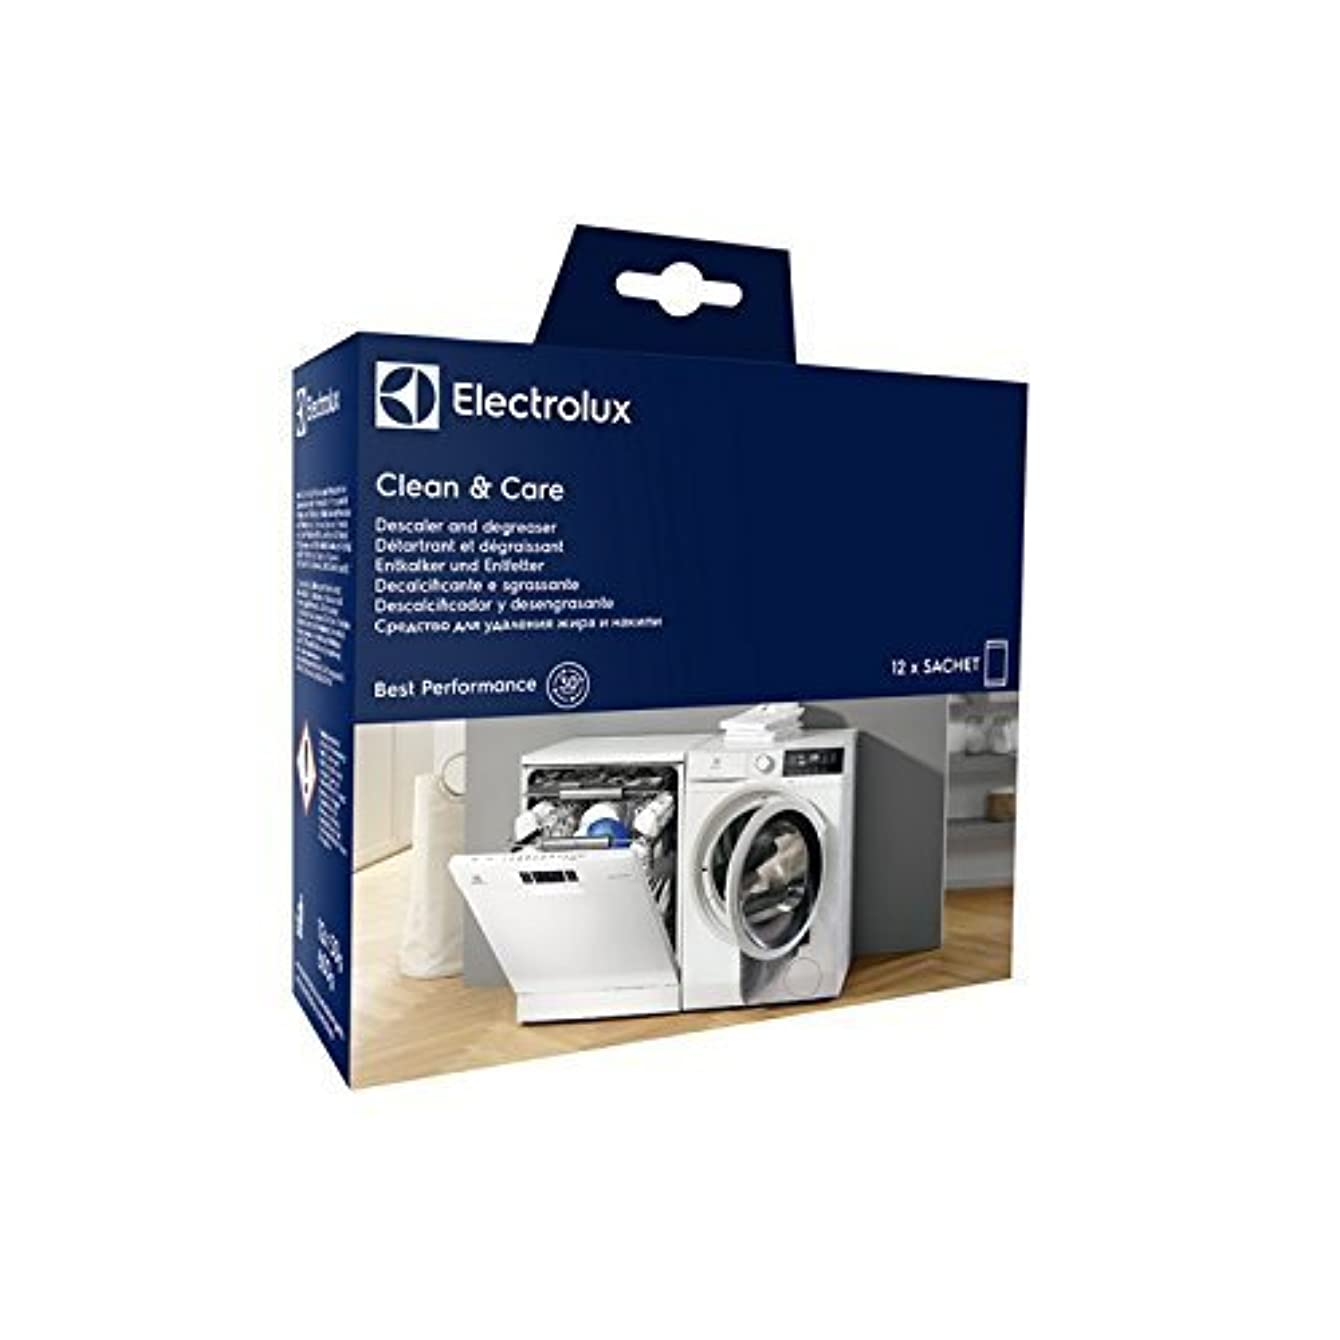 Electrolux 9029798072 Clean & Care Descaler for Washing Machine and Dishwashers